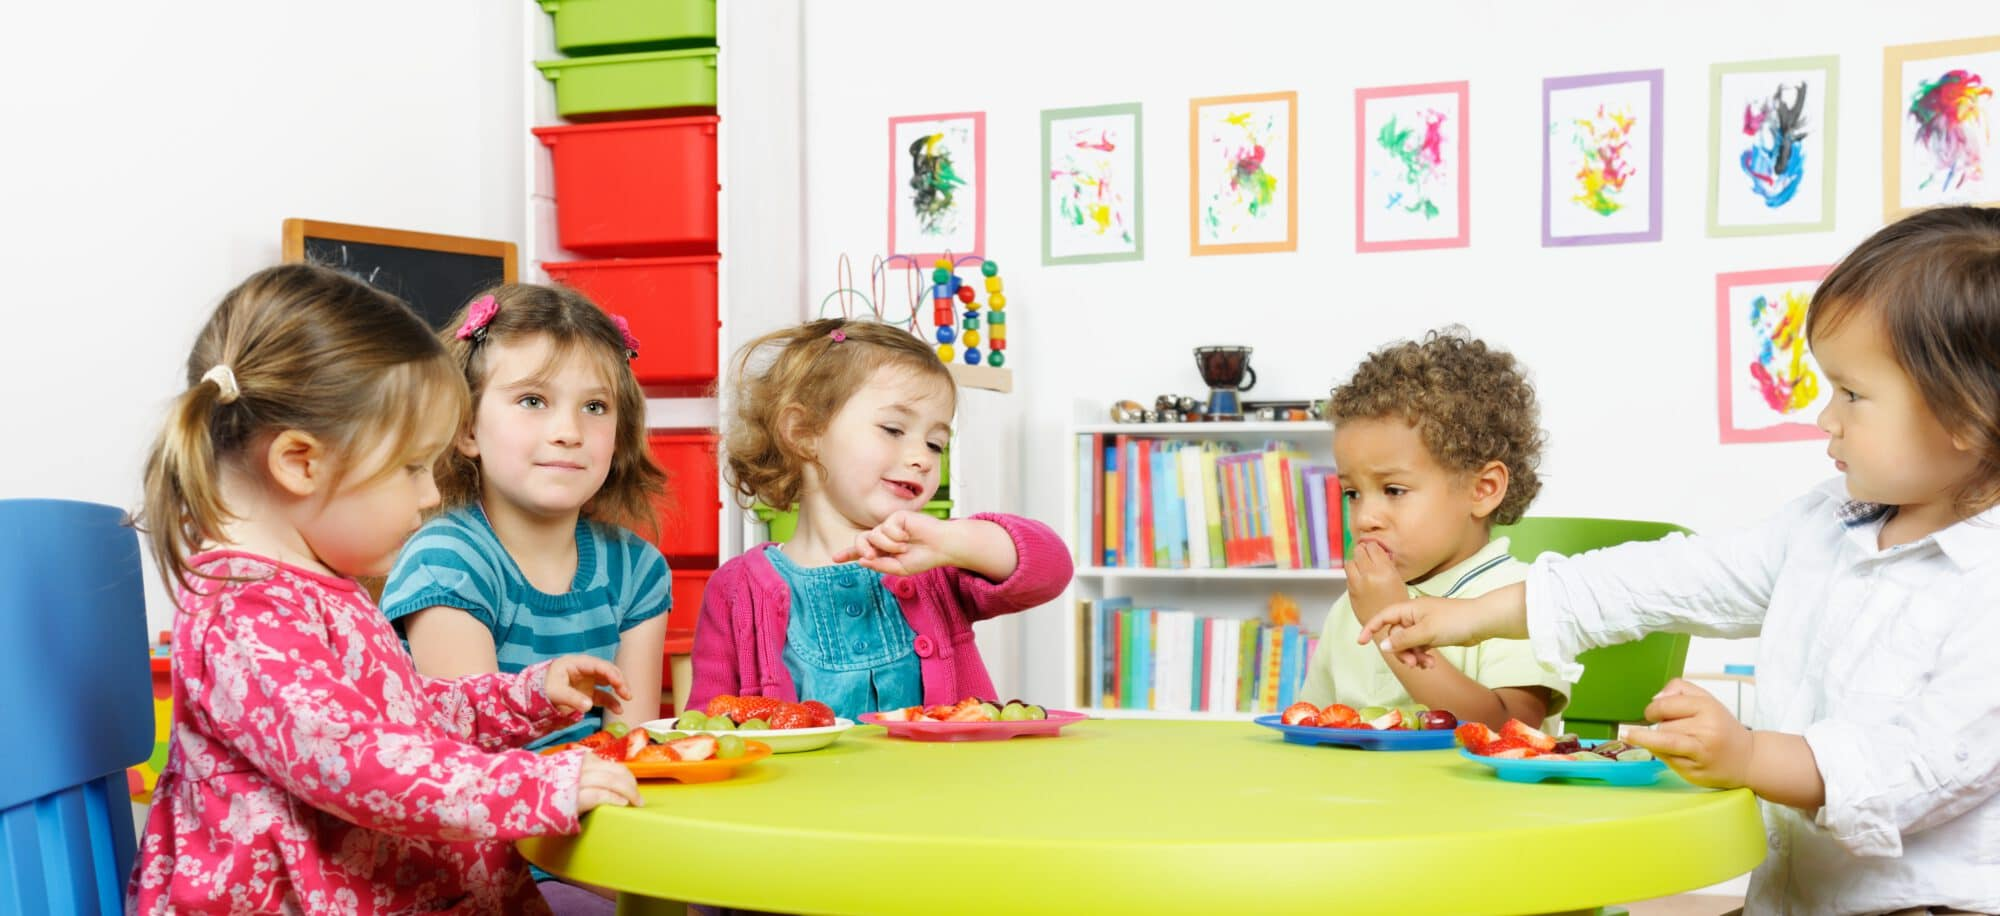 A portrait of group of children having fruit at nursery.Nikon D3X. Converted from RAW.Note to Inspector: artwork done by photographer.